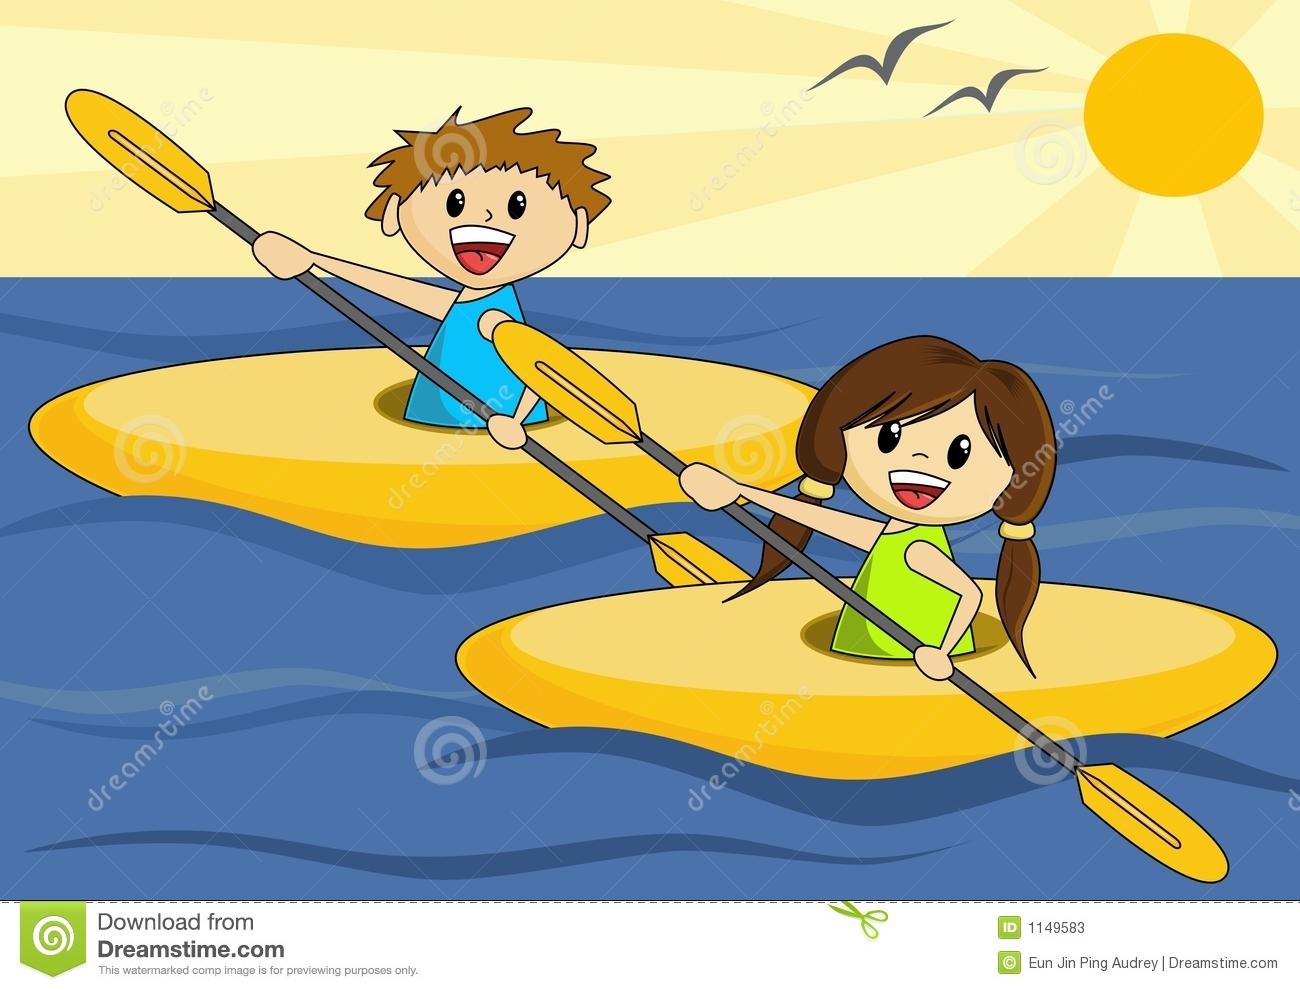 Boy And Girl In Canoes Stock Photos - Image: 1149583